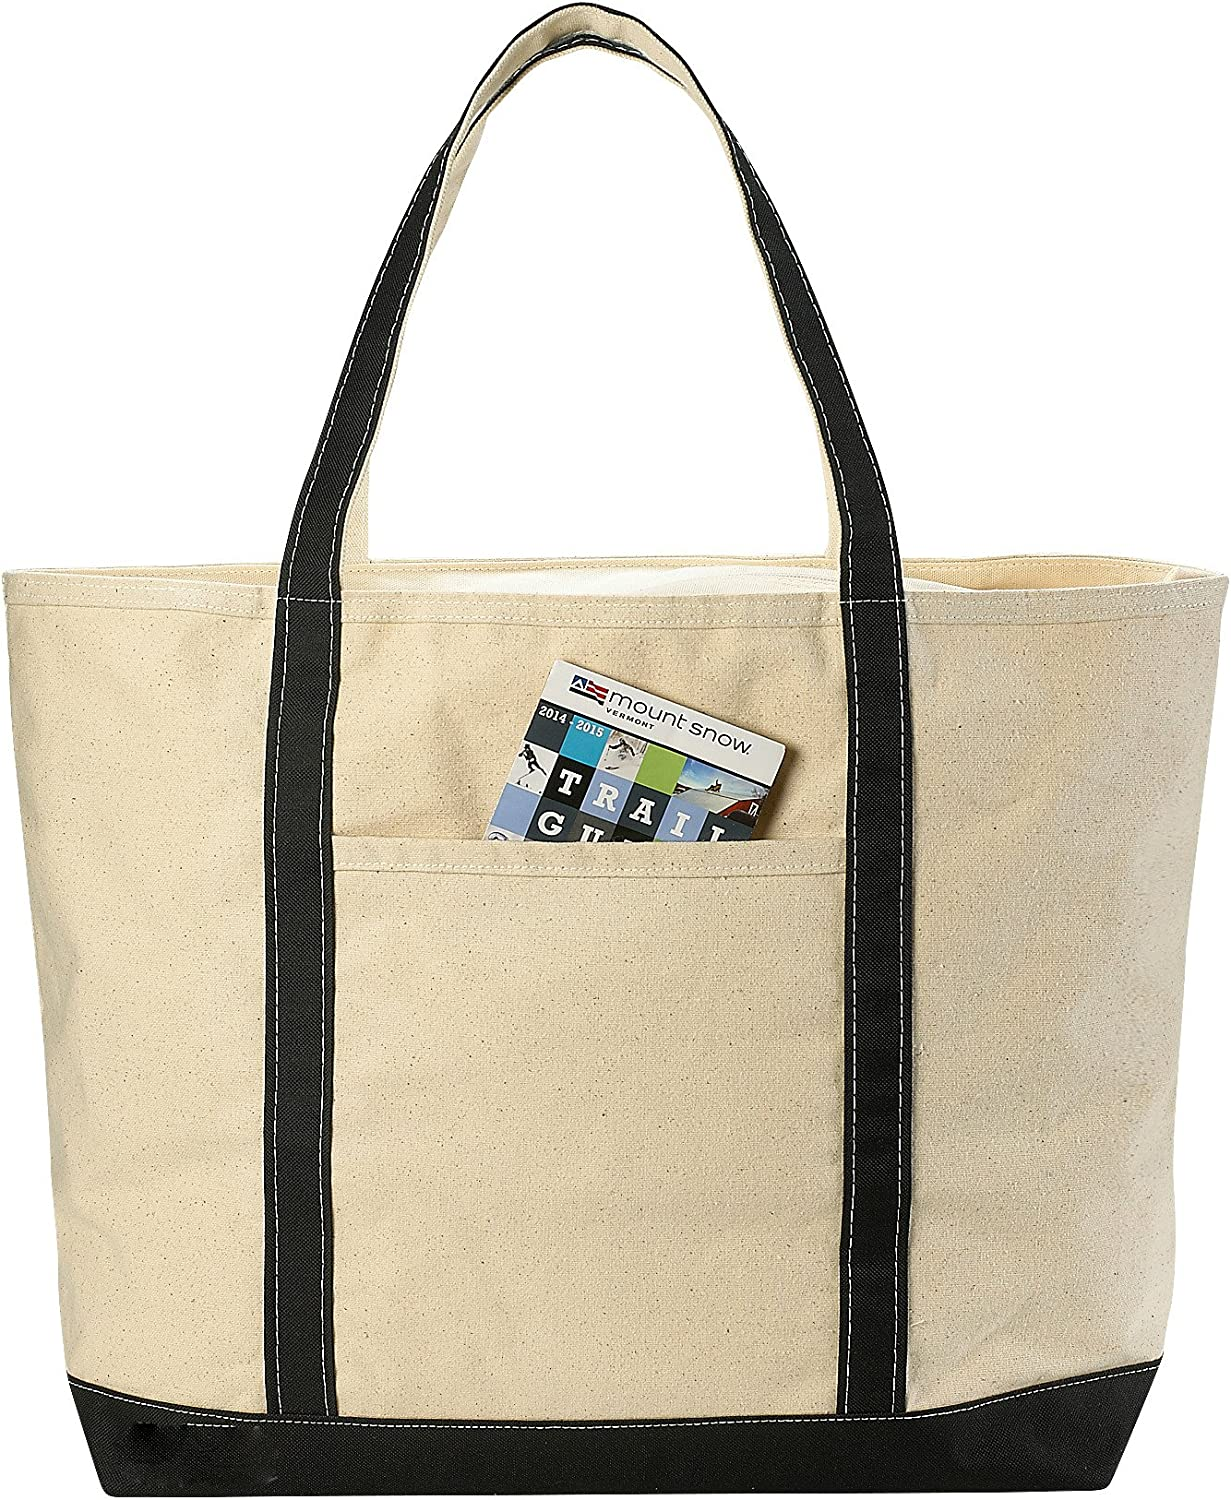 Handy Laundry Canvas Tote Beach Bag - Pockets and Shoulder Straps. (22 x 16 Inches)